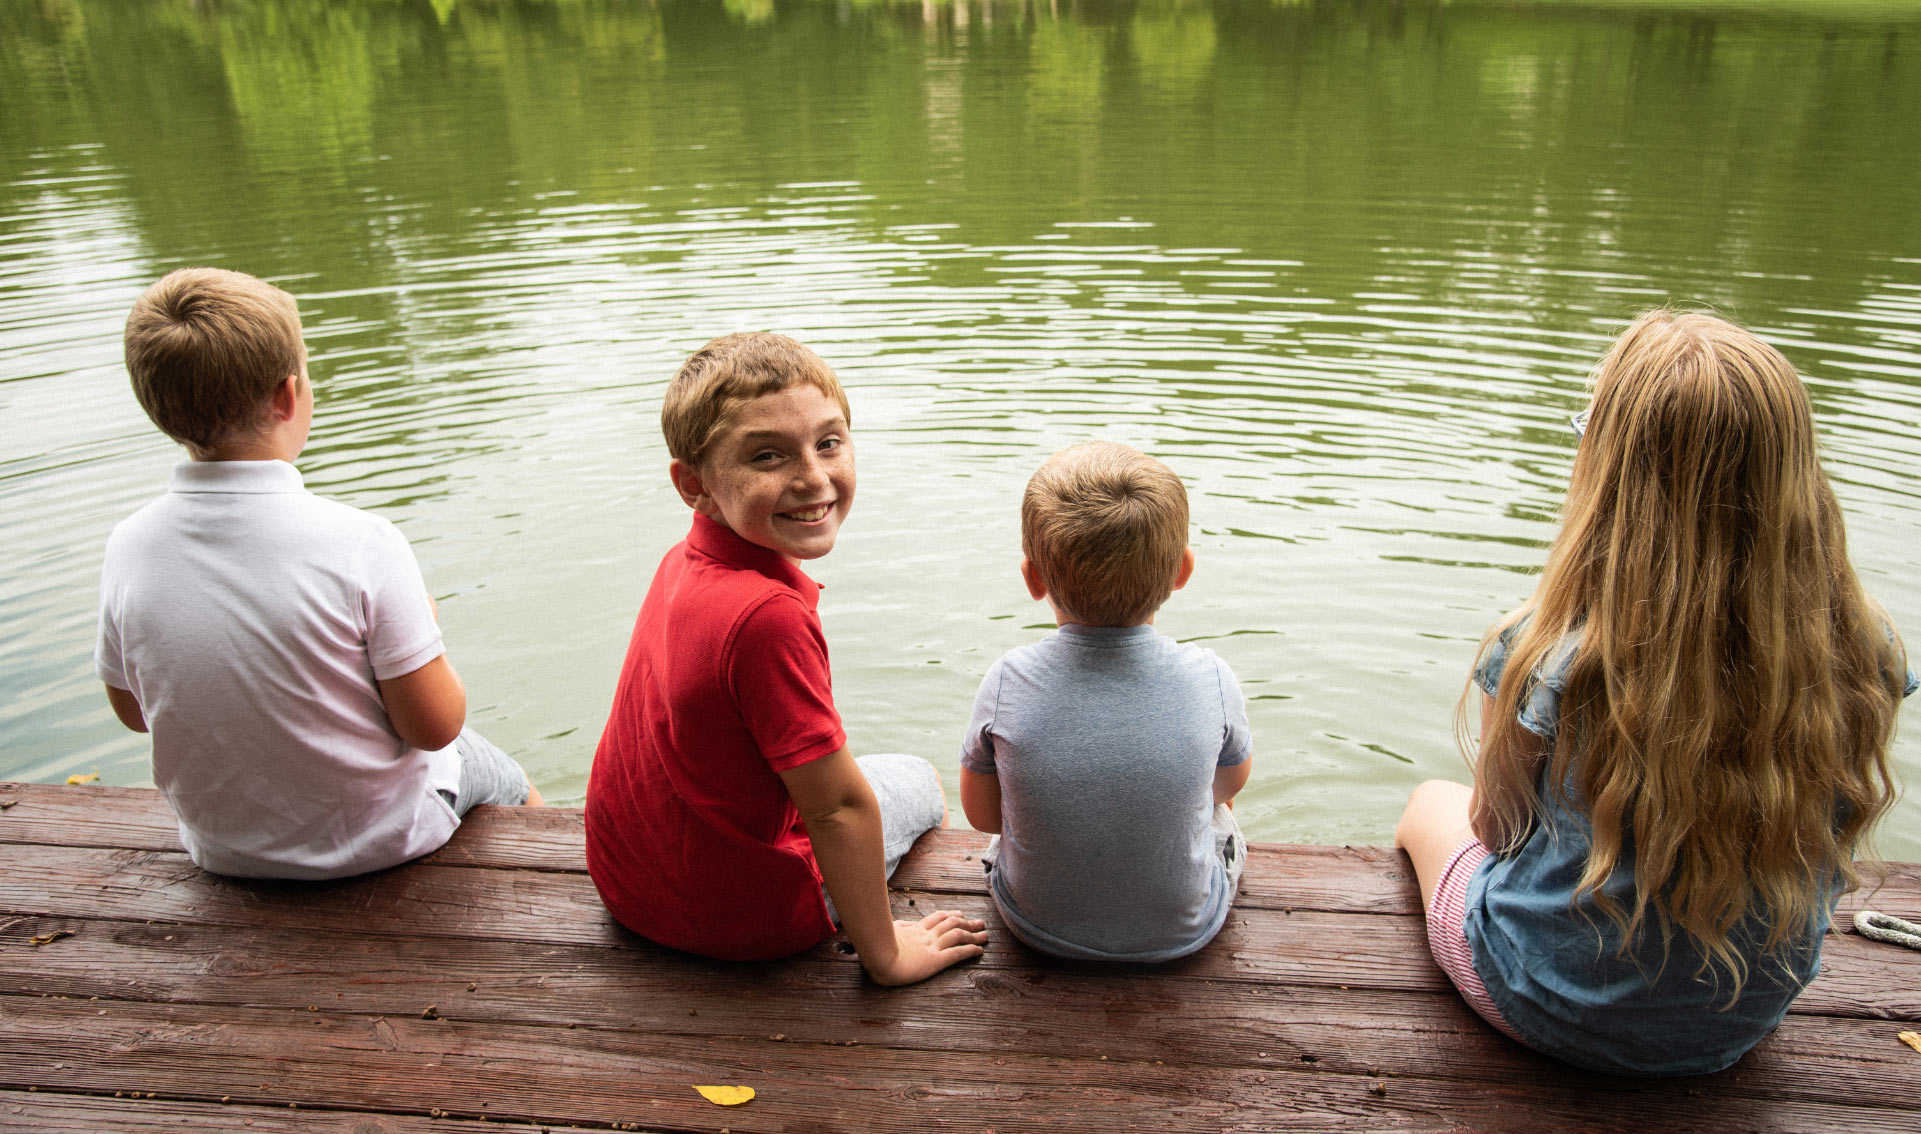 Max and his siblings sit on a dock. Max is turned to smile at the camera. His siblings are looking out at the lake.